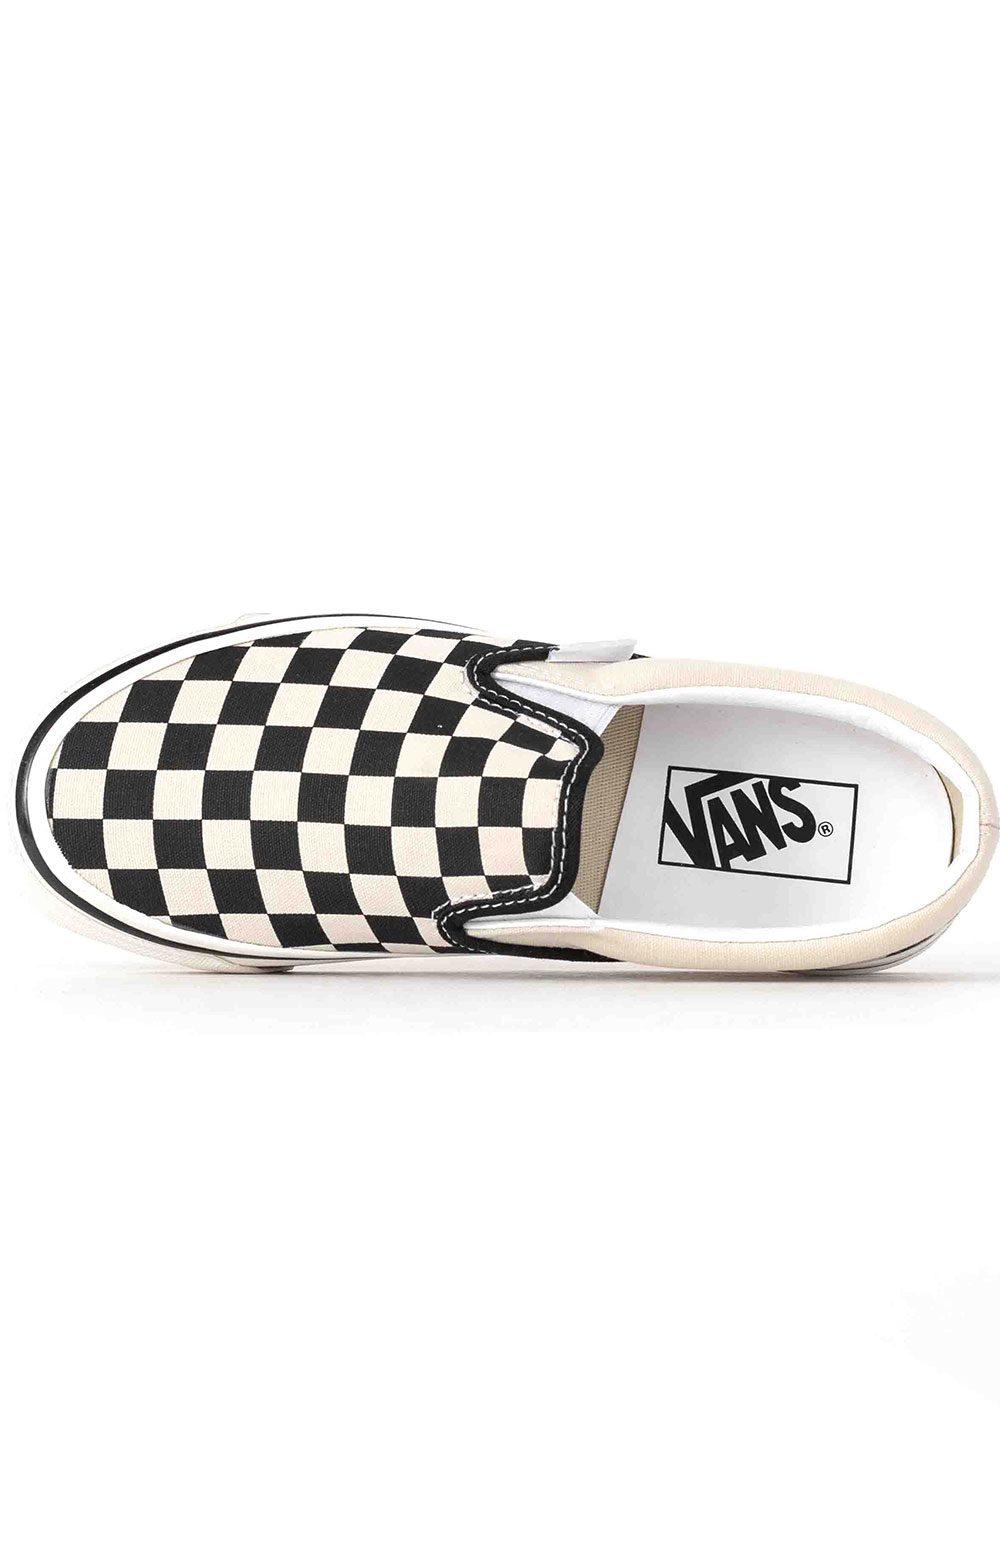 (JEXWVP) Anaheim Factory Classic Slip-On 98 DX Shoes - OG Fast Times  2